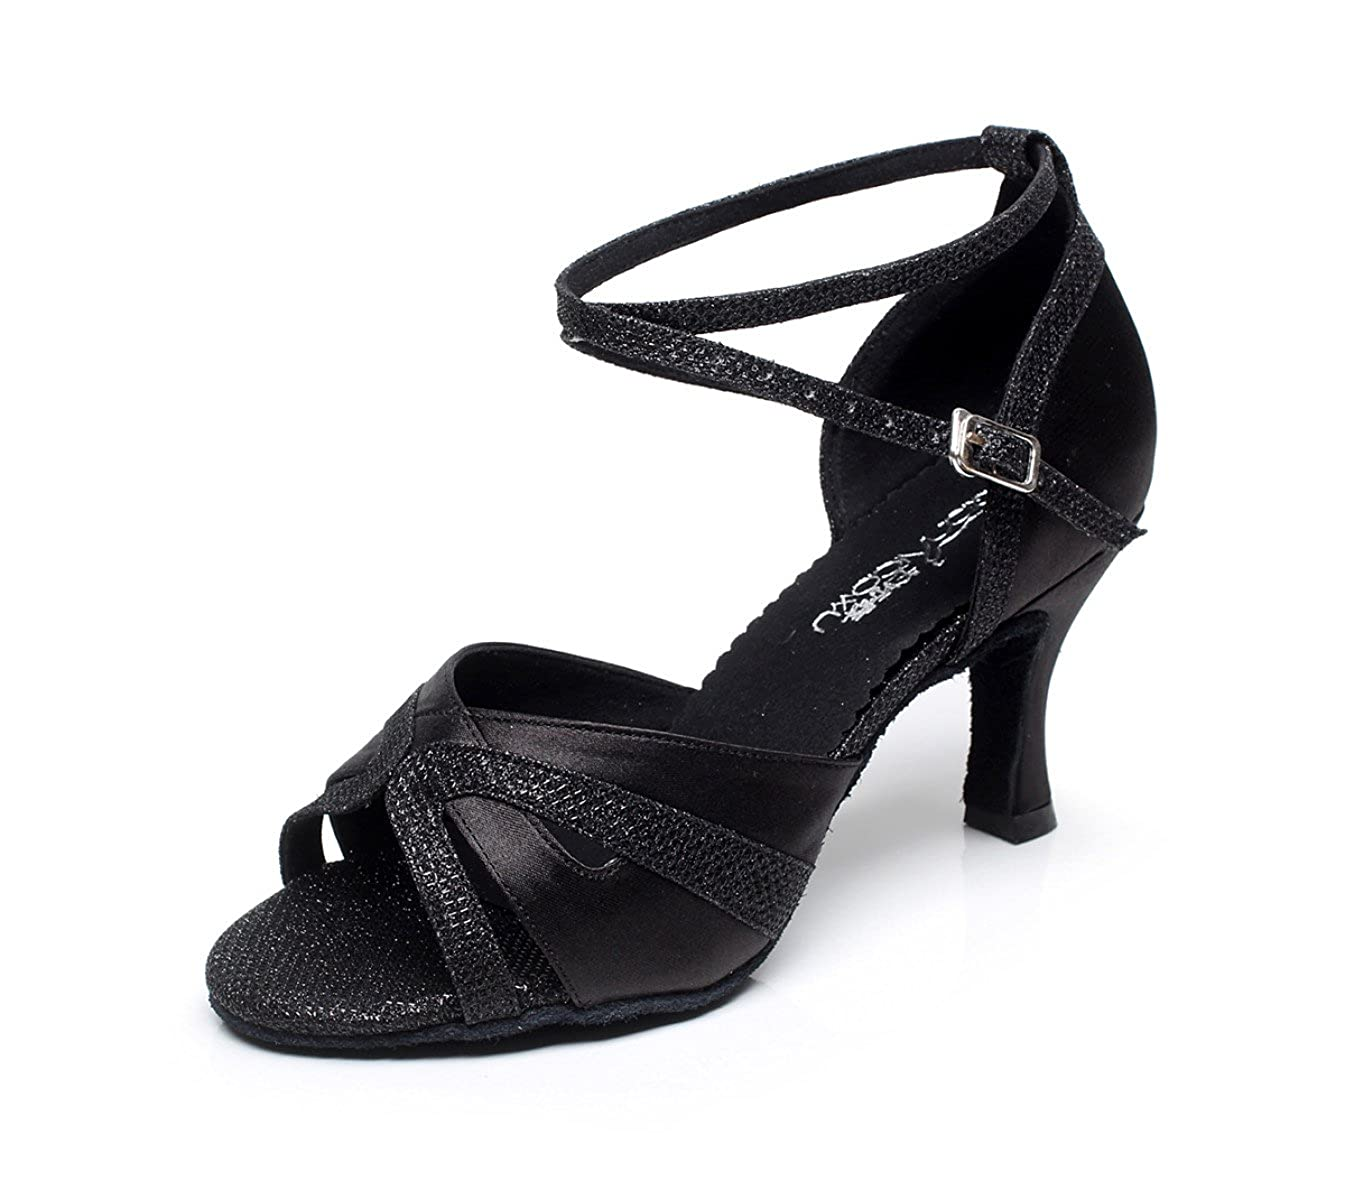 JSHOE Sexy Salsa Jazz Dance Chaussures Ballroom Latin Jazz Salsa Talons Tango Party Danse Chaussures Talons Hauts,Black-heeled7.5cm-UK3/EU33/Our34 - d75e156 - automaticcouplings.space